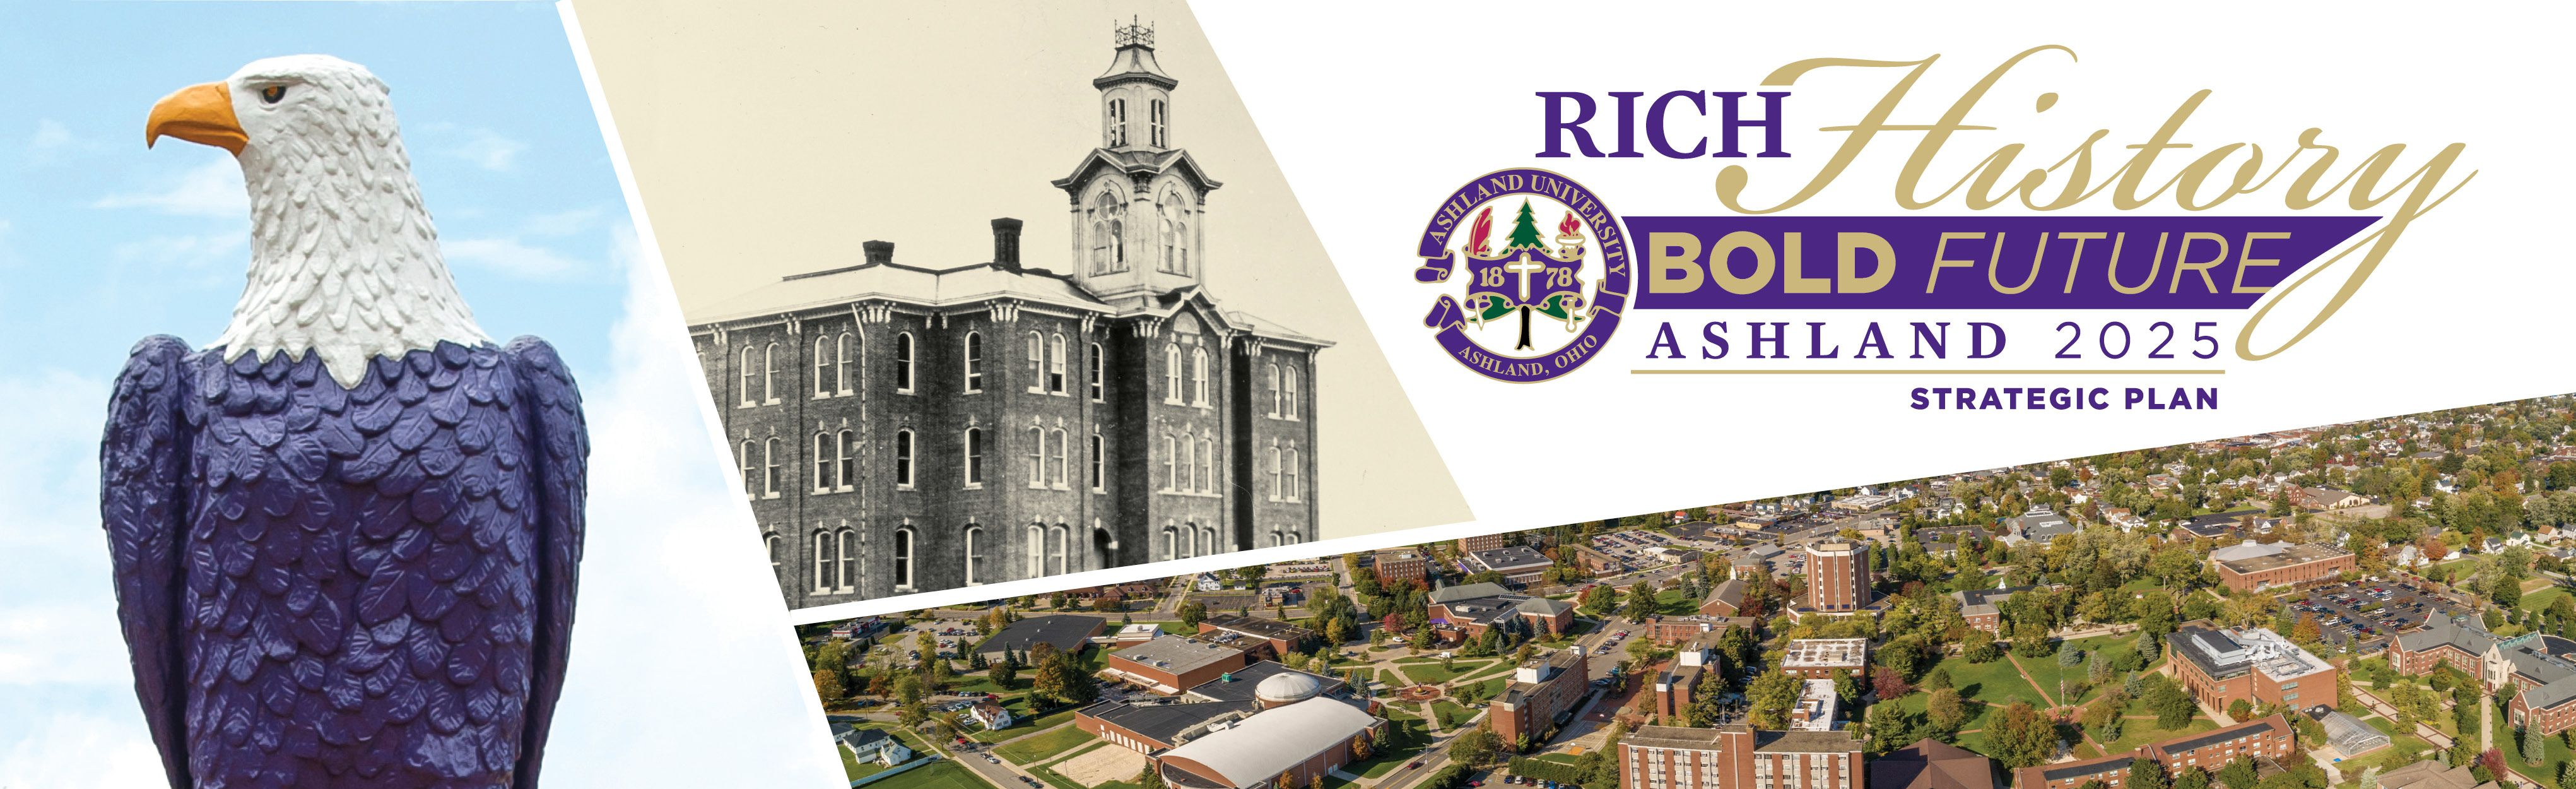 Rich History, Bold Future - Ashland 2025 Strategic Plan